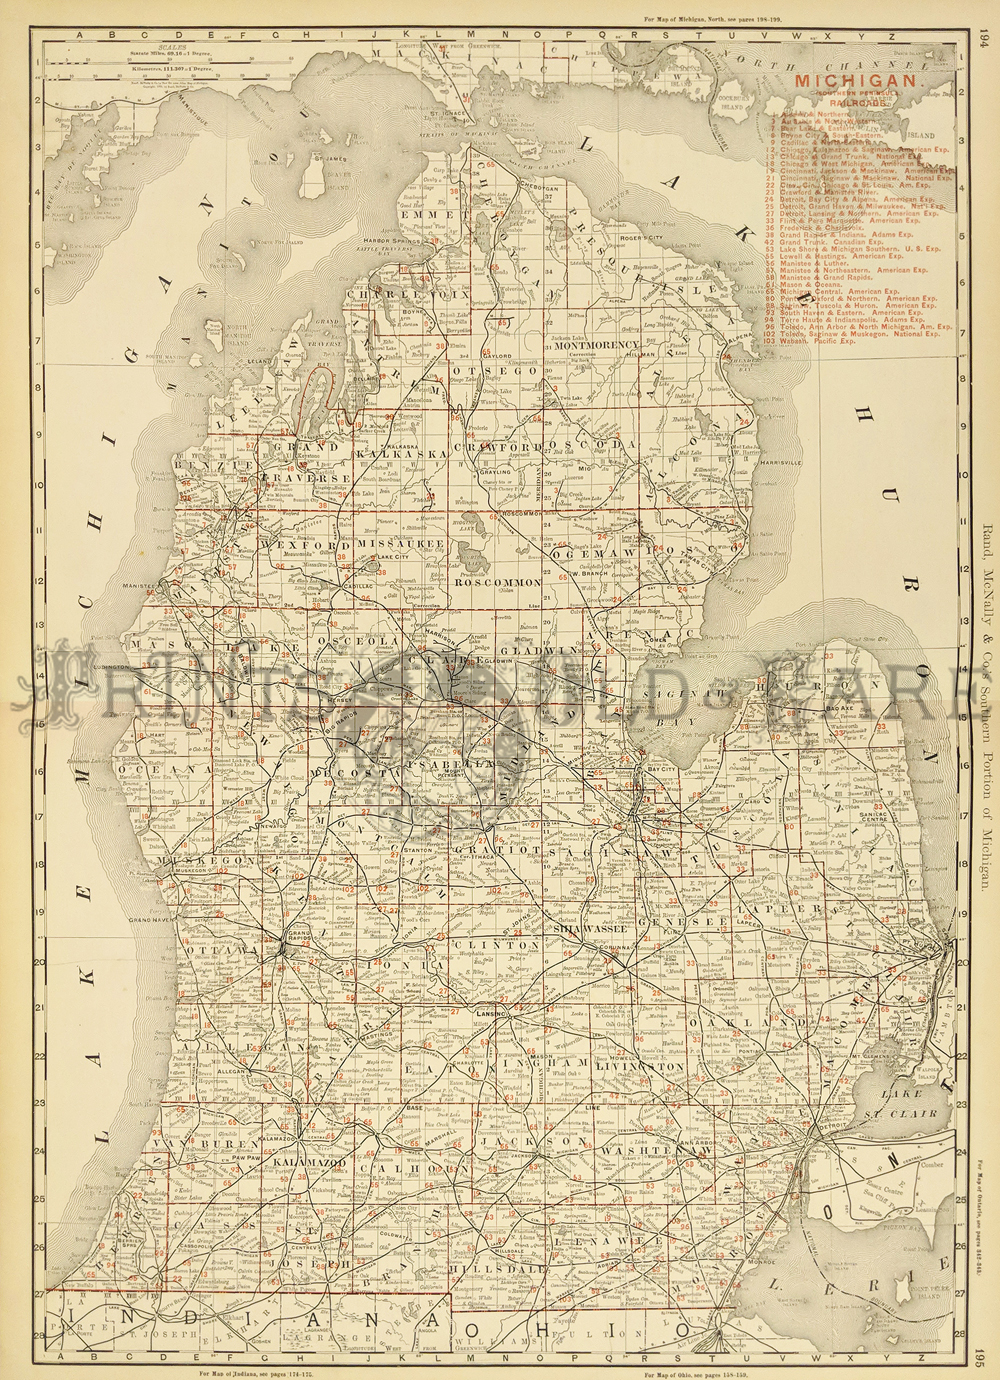 Prints old rare michigan antique maps prints s southern portion of michigan showing all the railroads in red of that era on the southern peninsula counties are also shown and the cities within them publicscrutiny Image collections